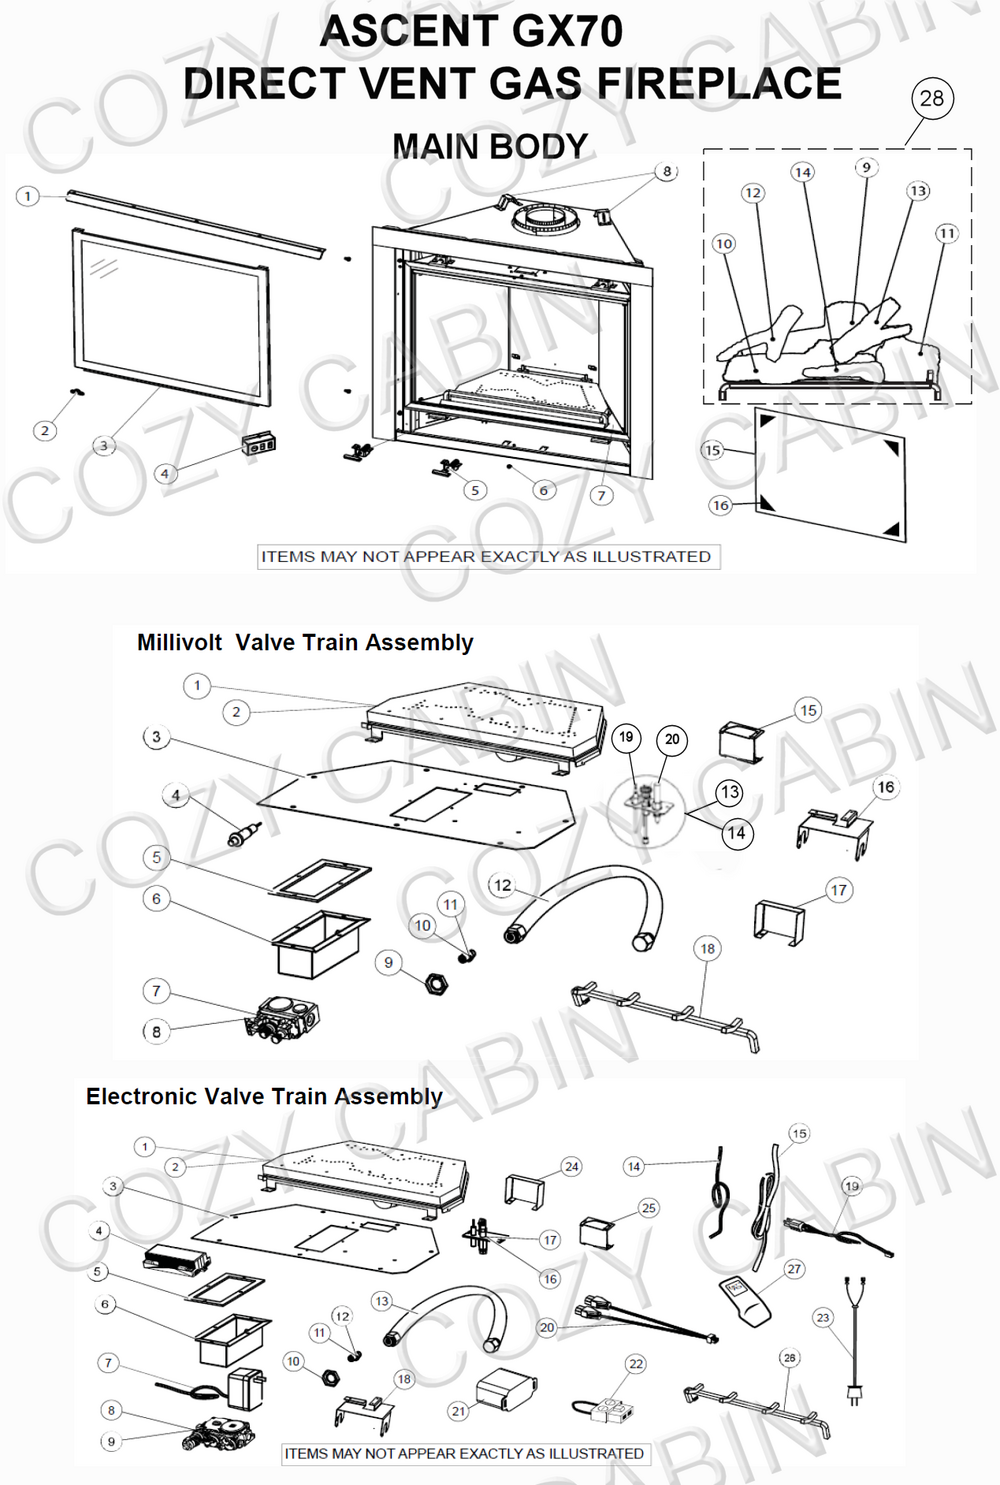 ascent direct vent gas fireplace gx70 gx70 napoleon parts